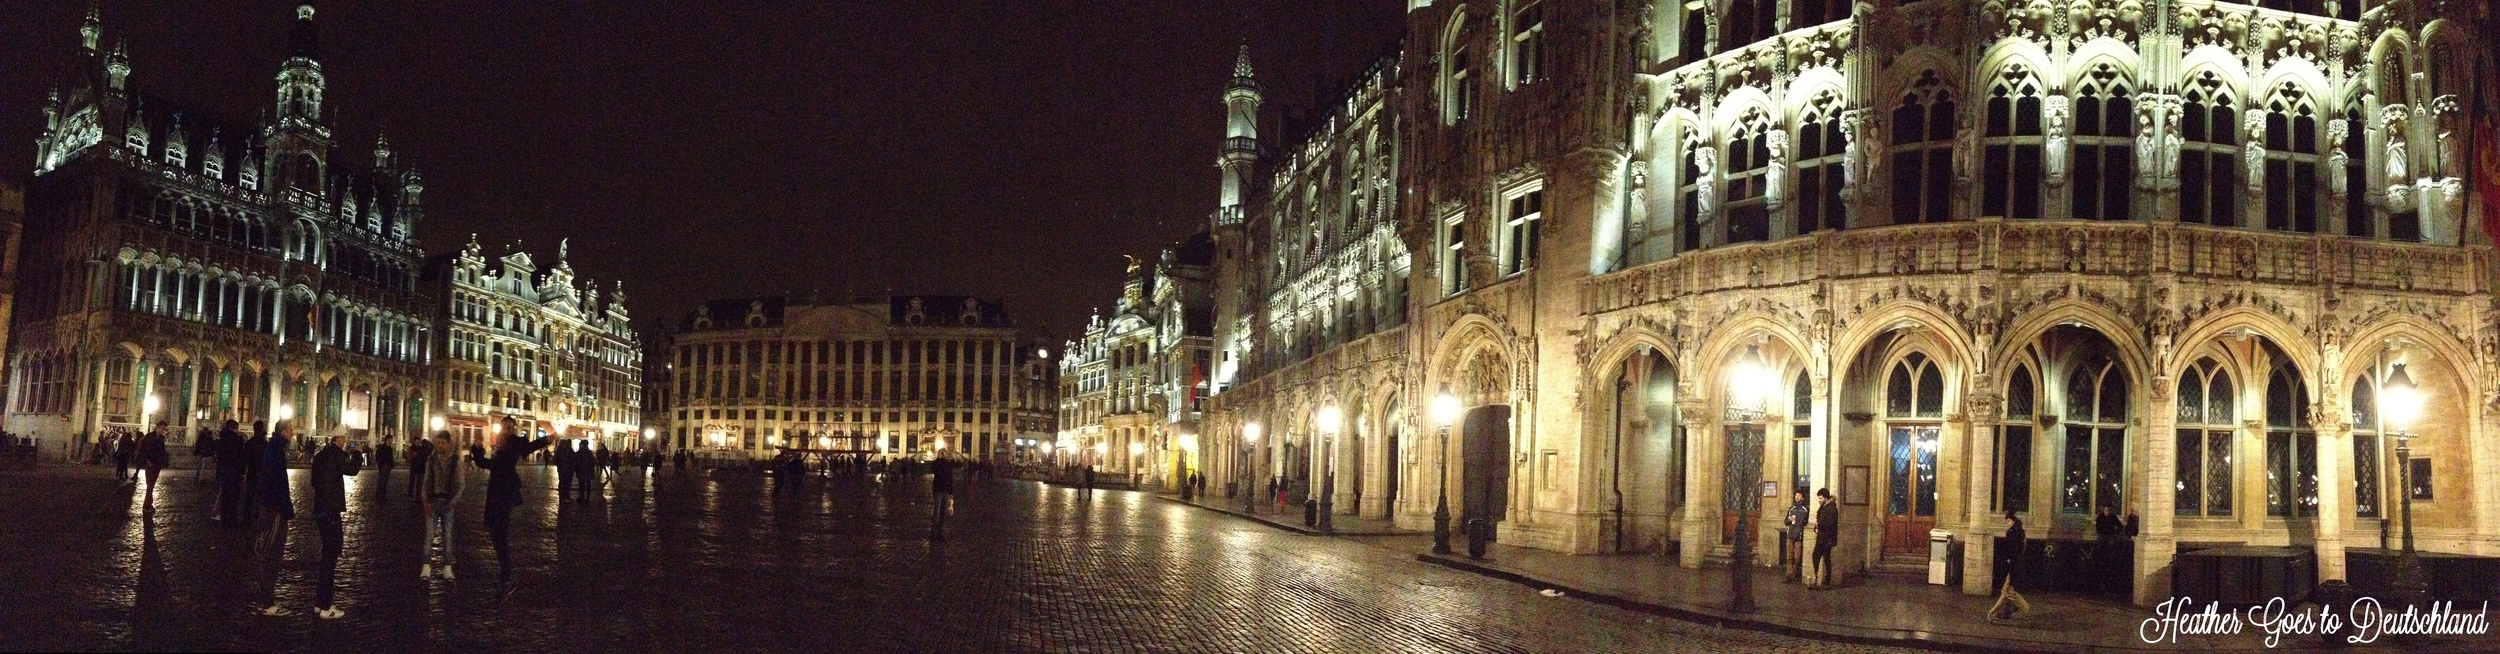 Heather Goes to Deutschland: 5 Thoughts I Had While in Brussels